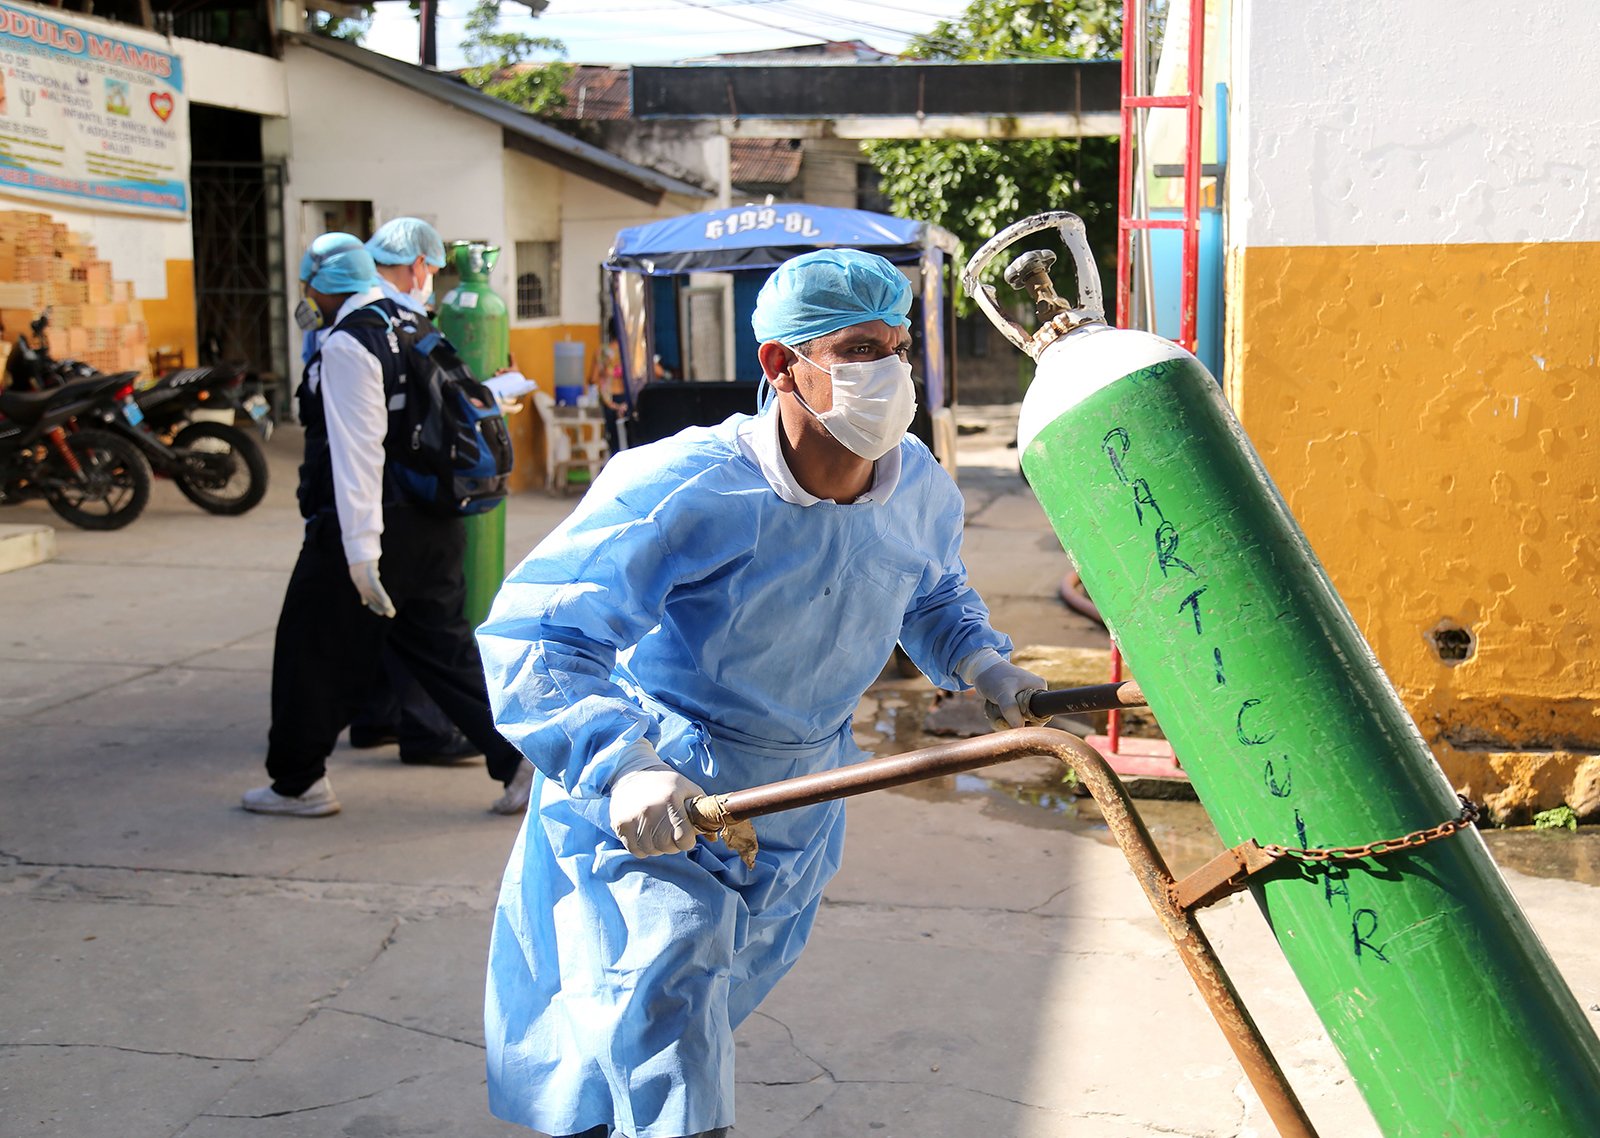 A health worker transports an oxygen tank at the Cesar Garayar support hospital in the city of Iquitos, Peru, on May 22.